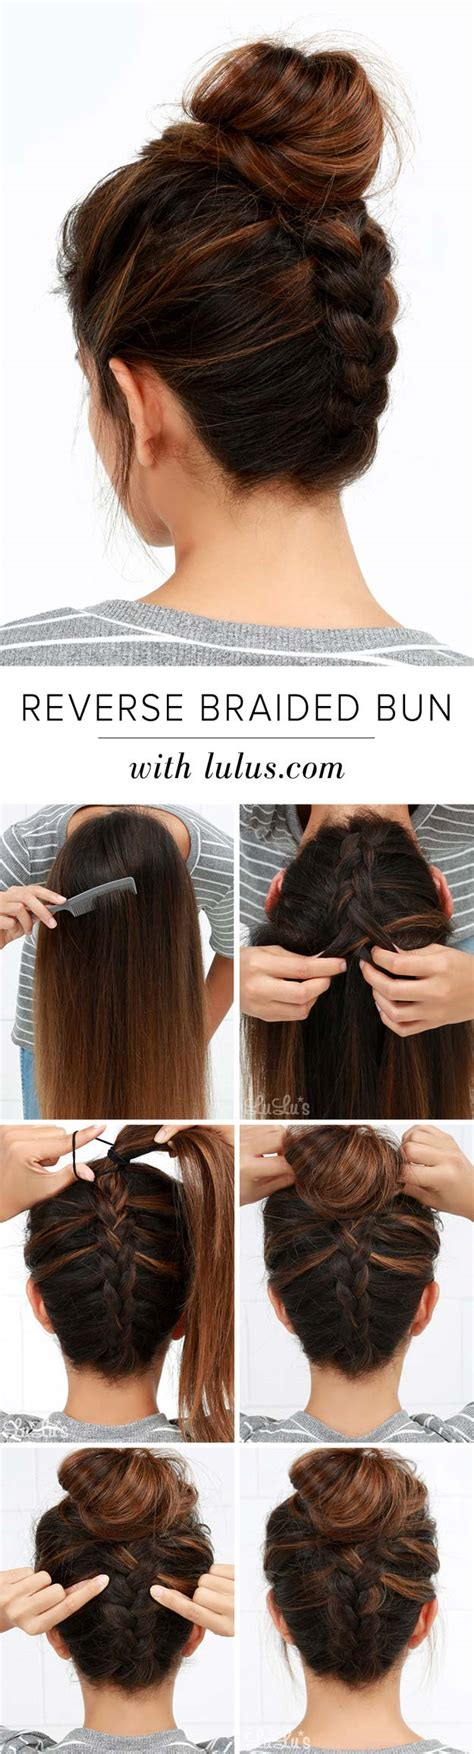 hairstyles diy blog 28 diy cool easy hairstyles that real people can actually